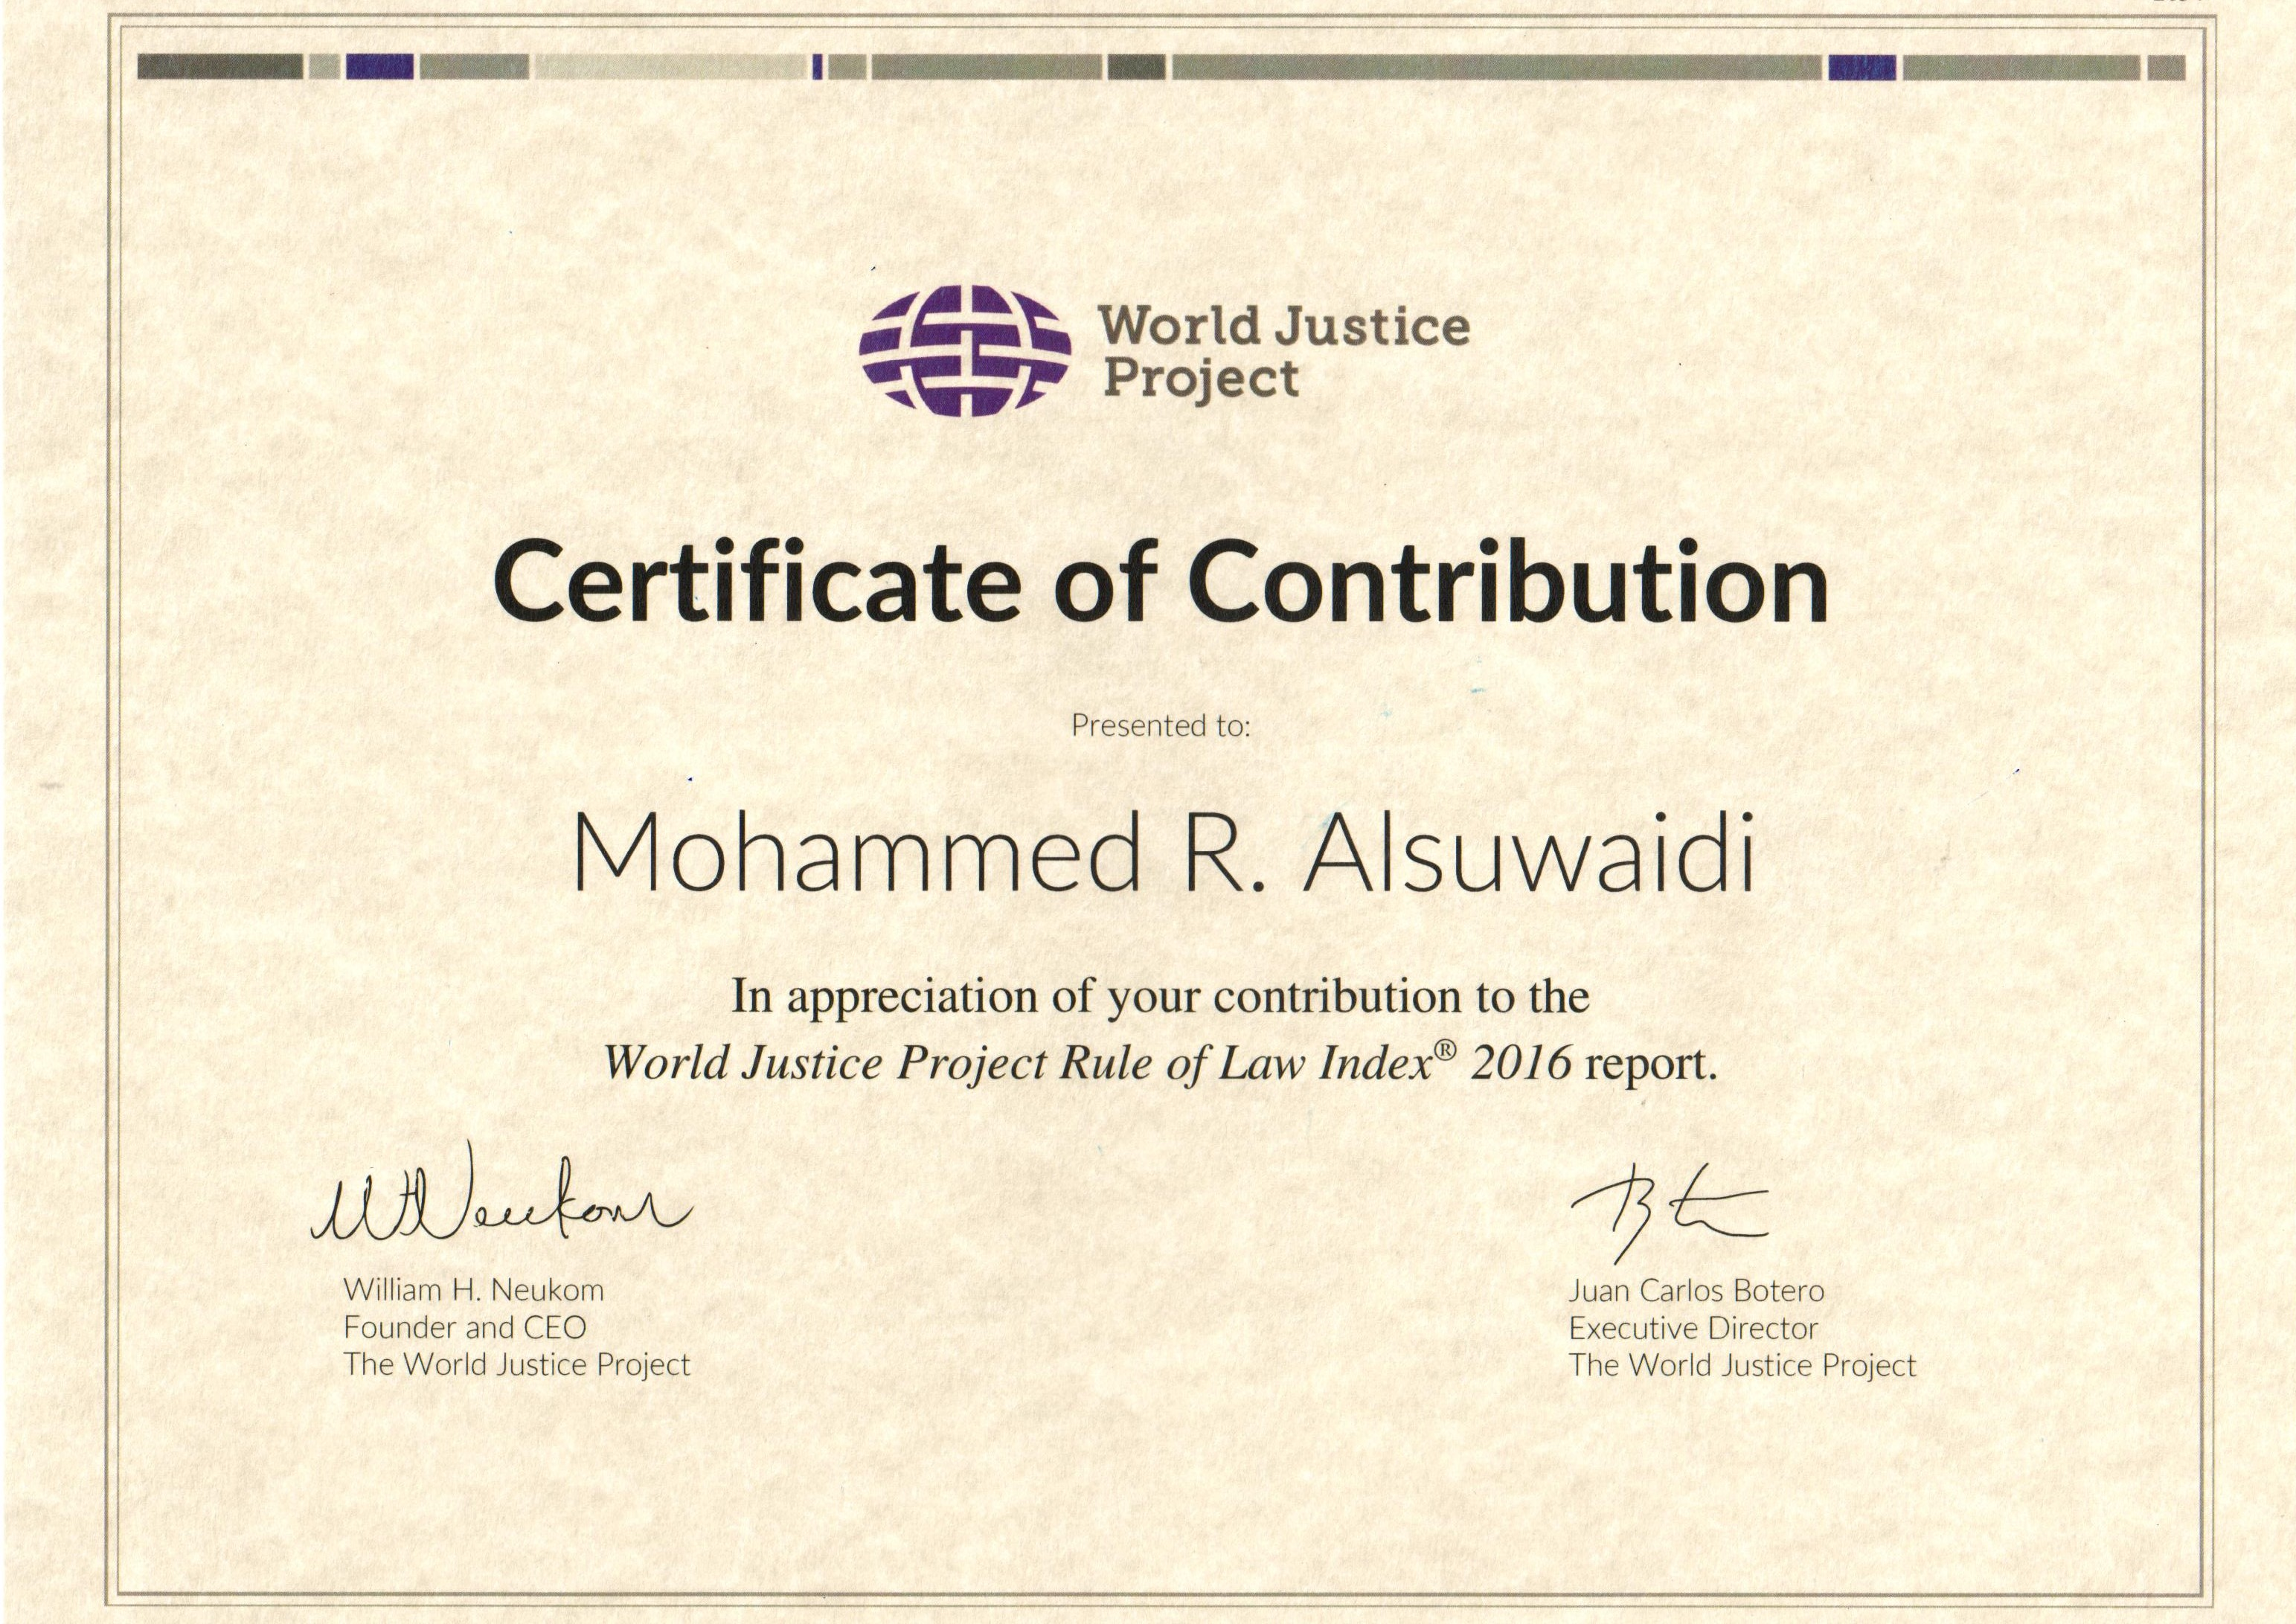 Certificate of Contribution - World Justice Project